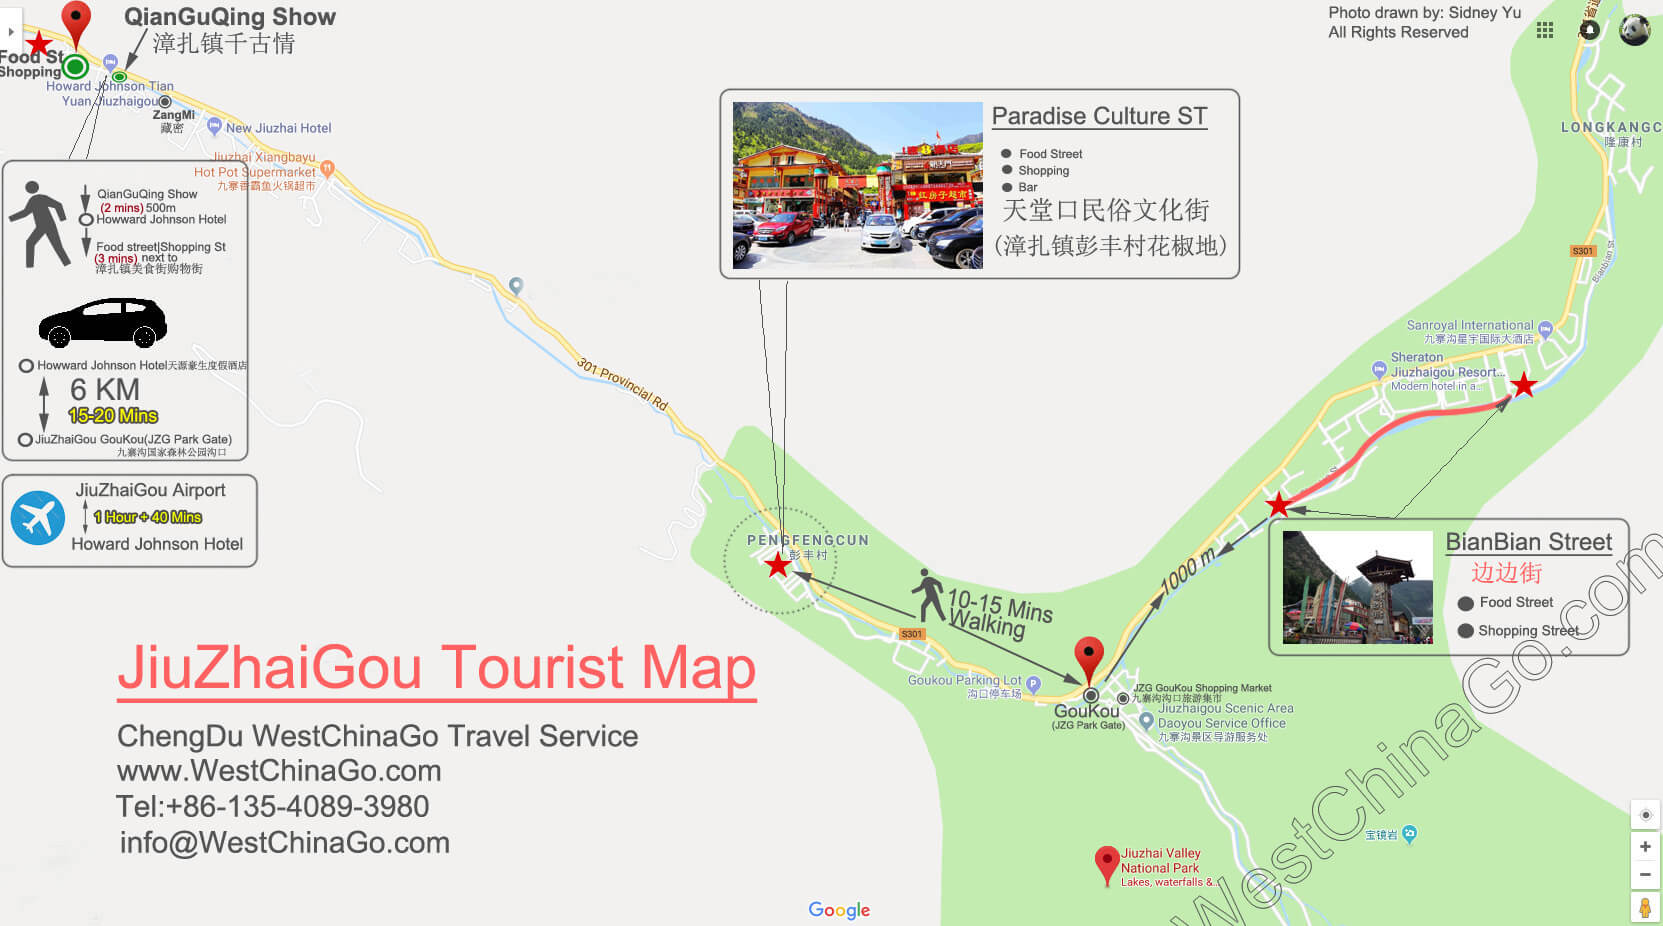 jiuzhaigou food and shopping street map